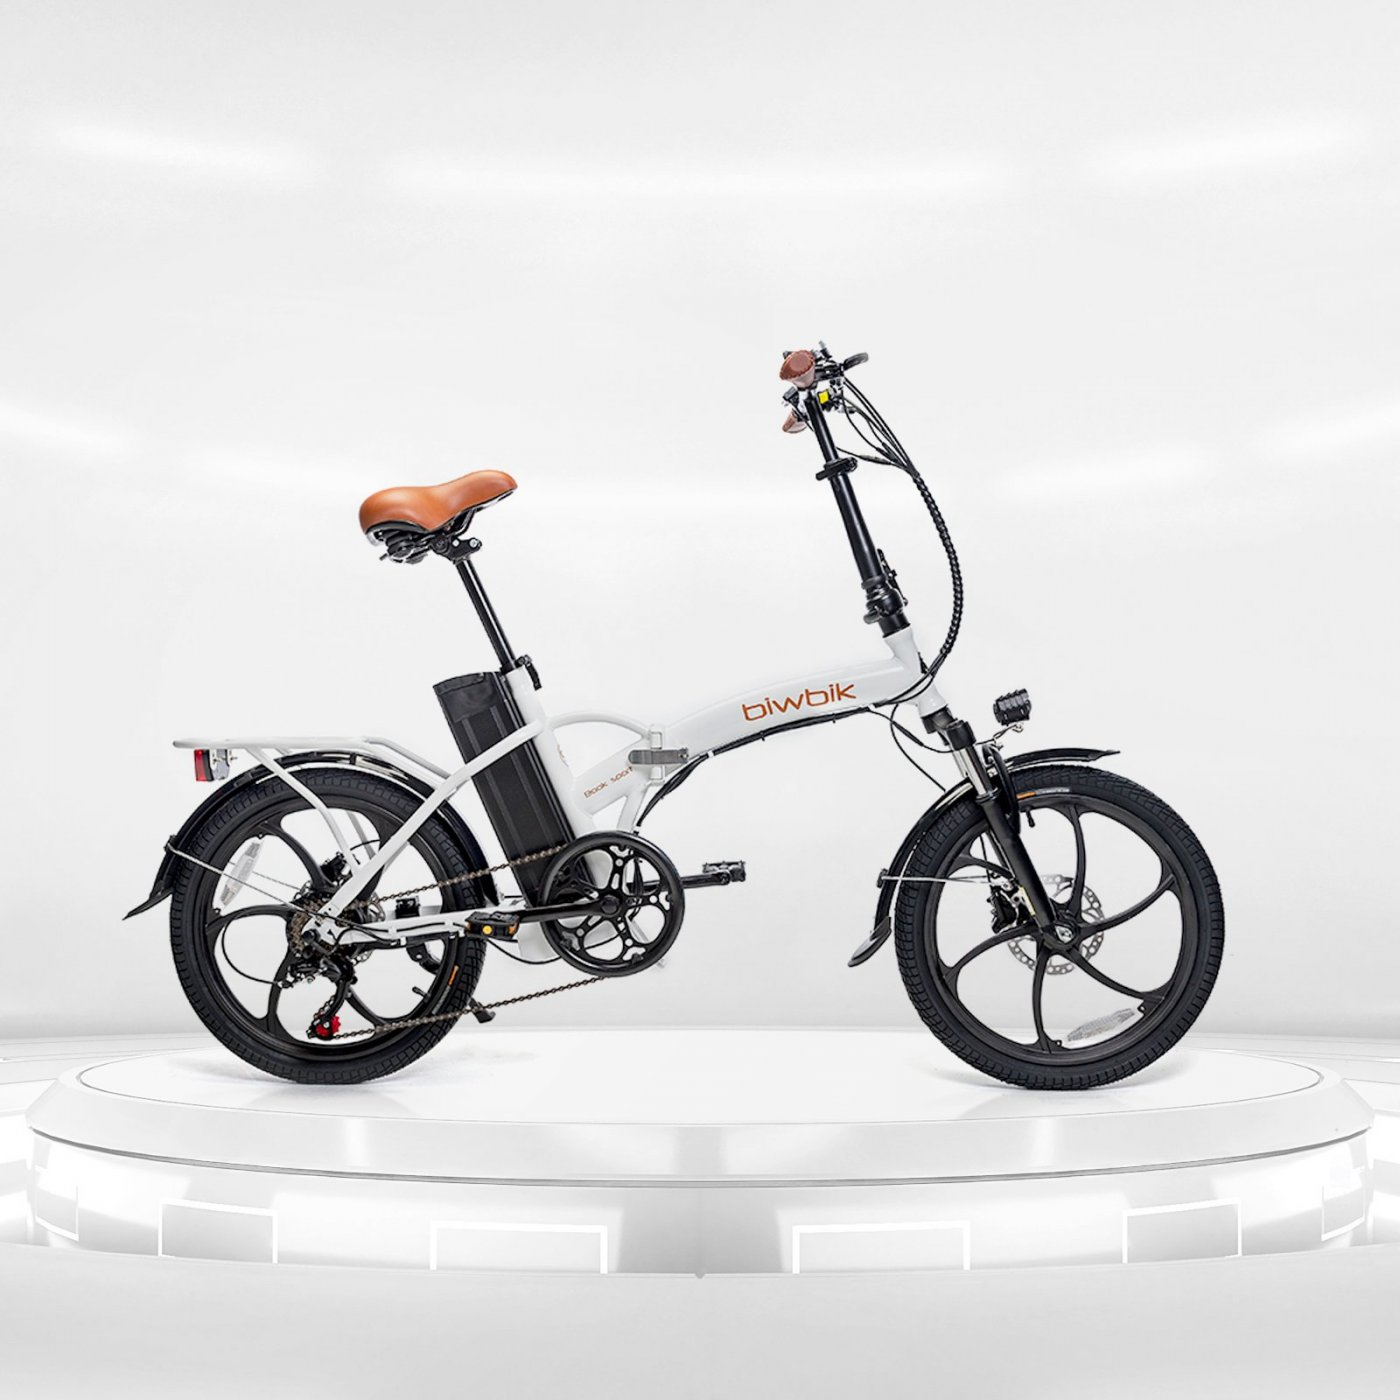 Folding electric bike Biwbik Book Sport white